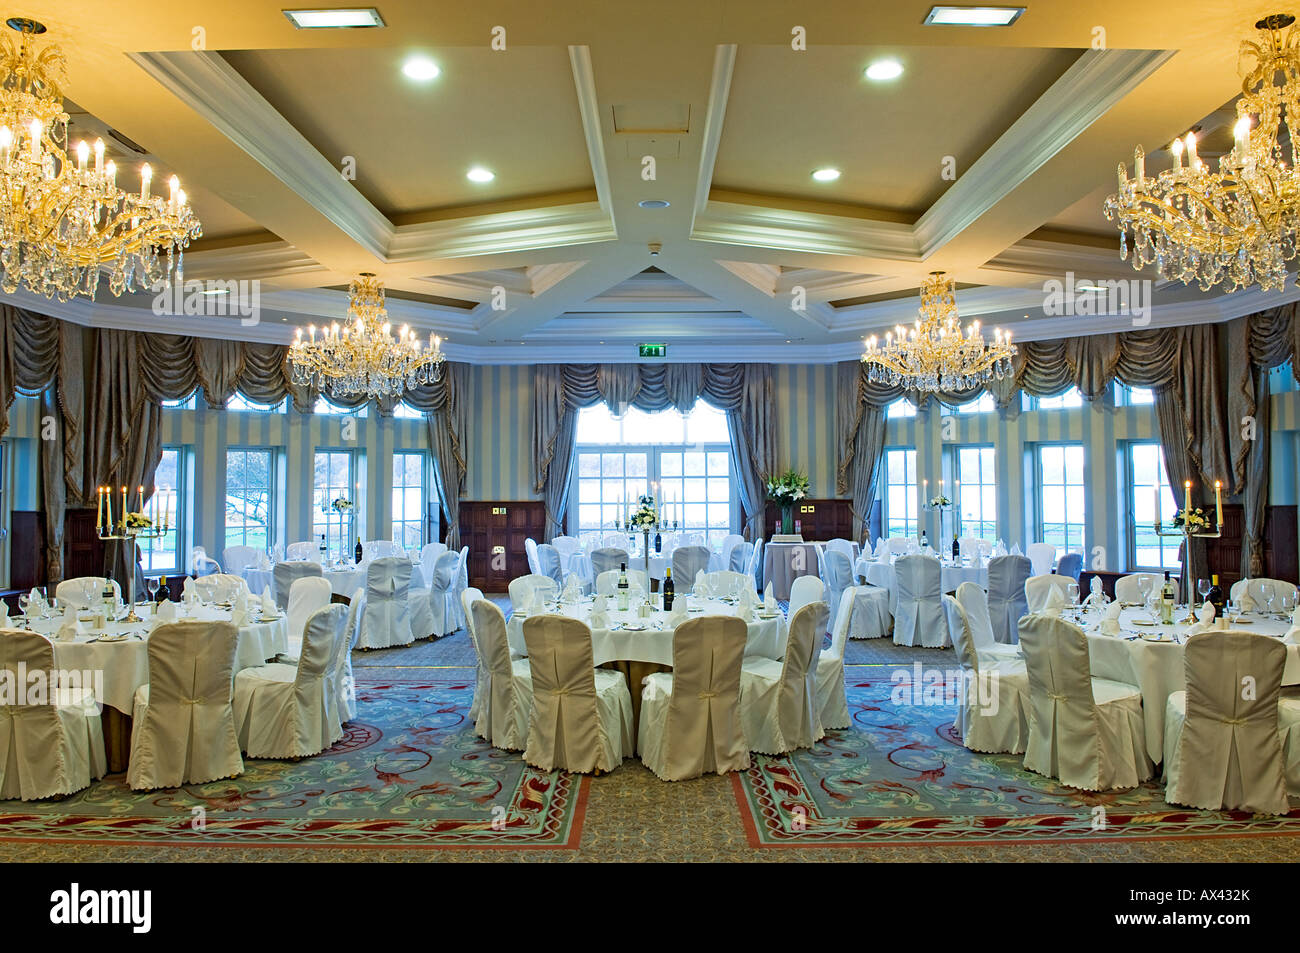 Hotel Function Room Stock Photos & Hotel Function Room Stock Images ...